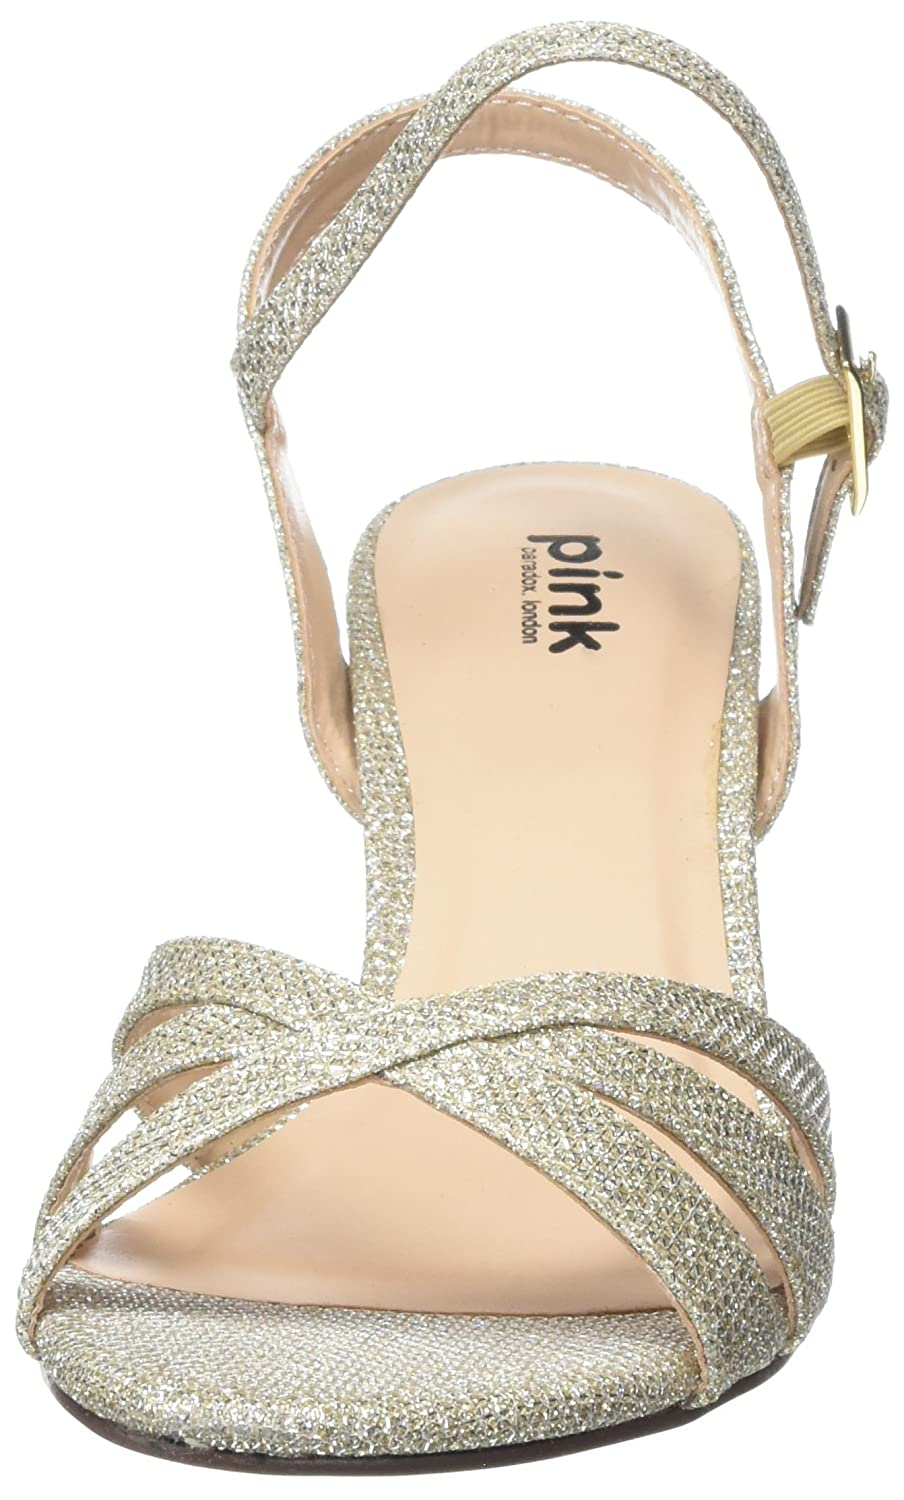 58da0e421d7 Pink by Paradox of London Women s Shelby Ankle Strap Sandals  Amazon.co.uk   Shoes   Bags